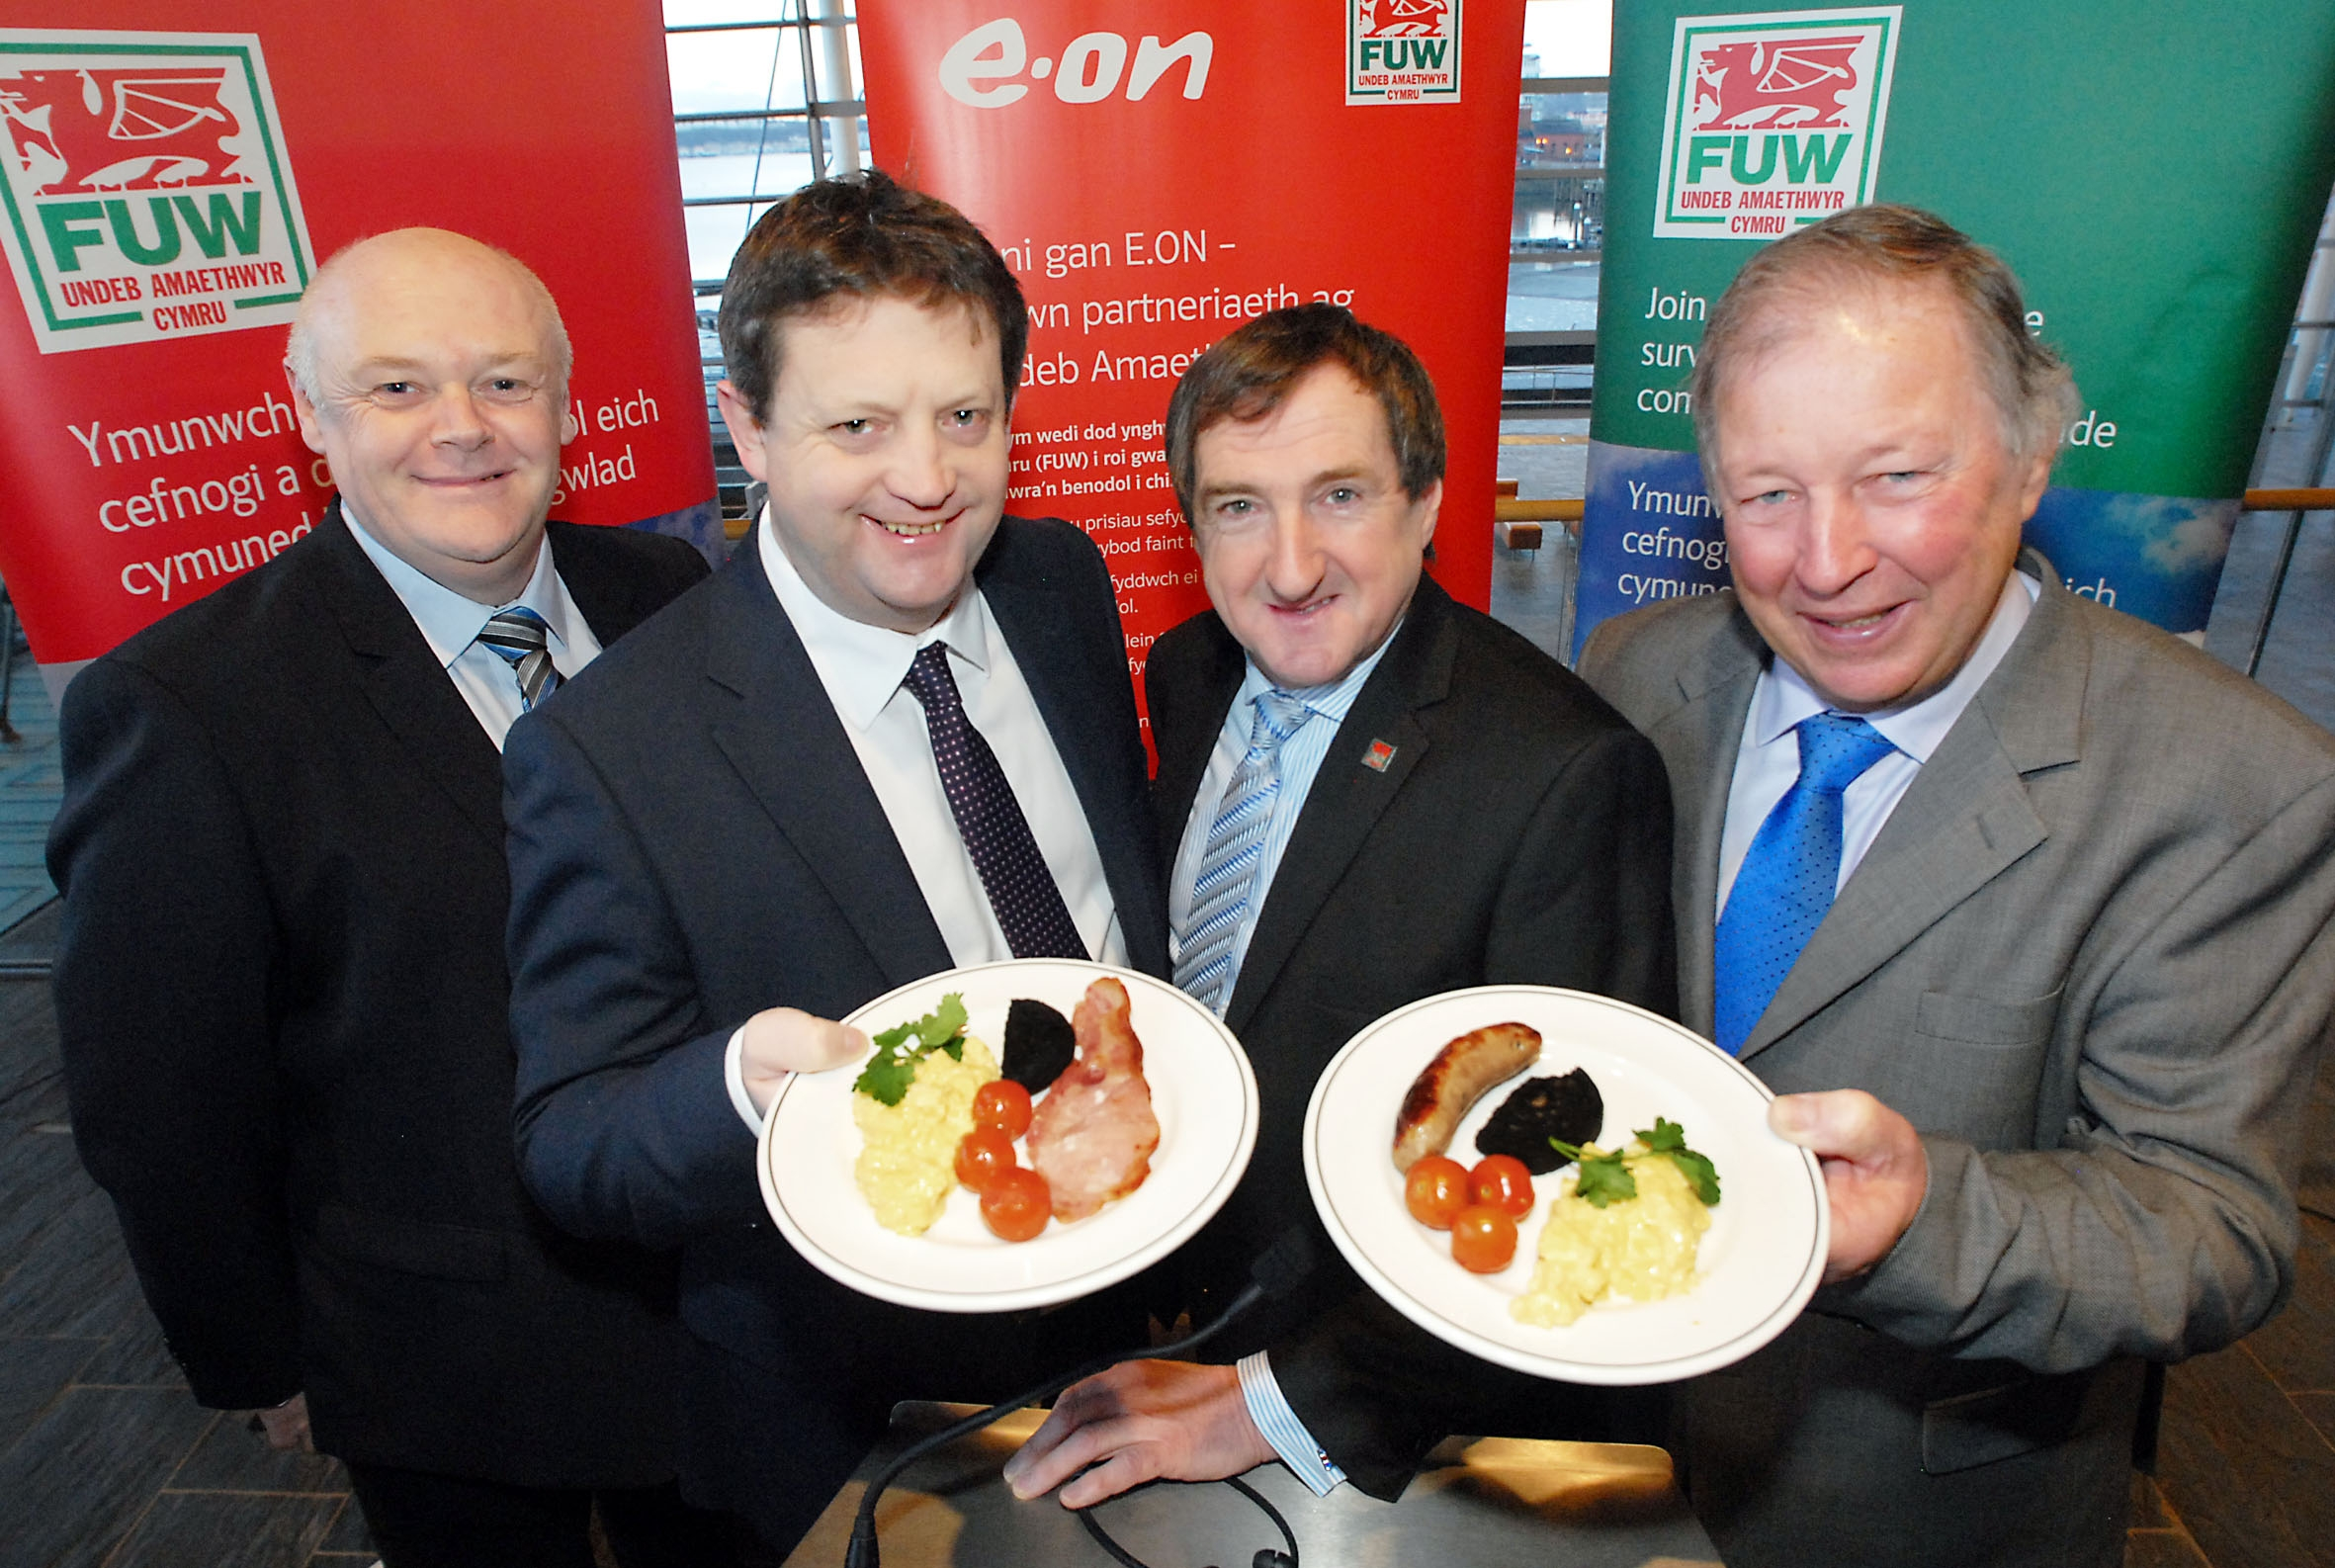 WELSH BREAKFAST: FUW president Emyr Jones (second from right) with (from left) sponsors' representatives E.ON's David Foode, natural resources and food minister Alun Davies and Hybu Cig Cymru chairman Dai Davies.